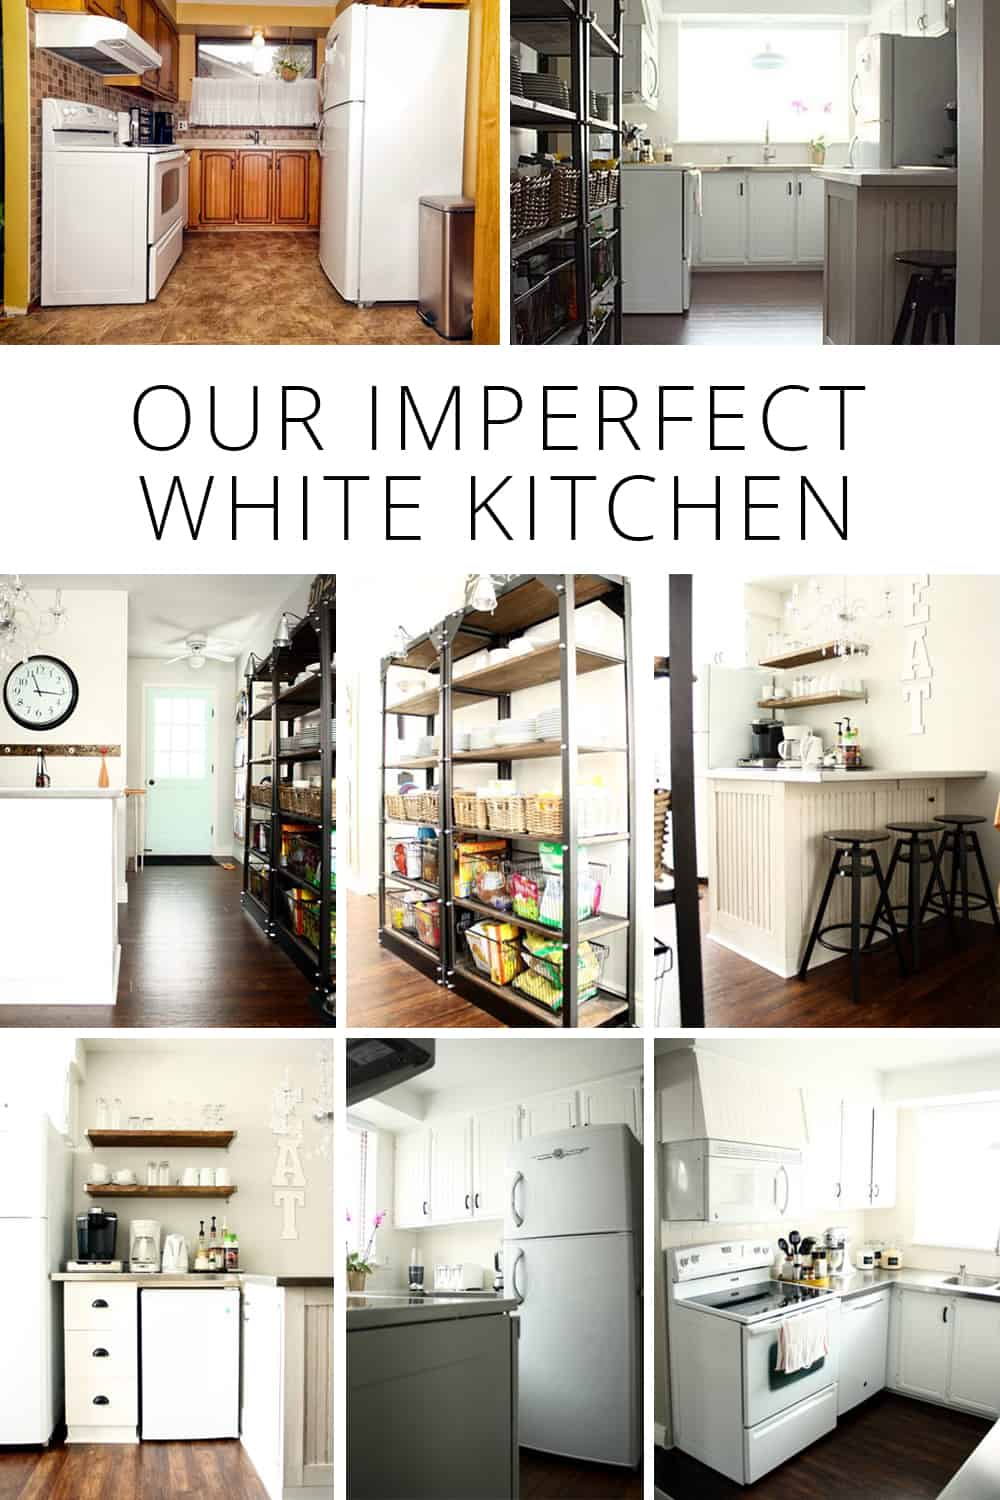 Our Imperfect White Kitchen